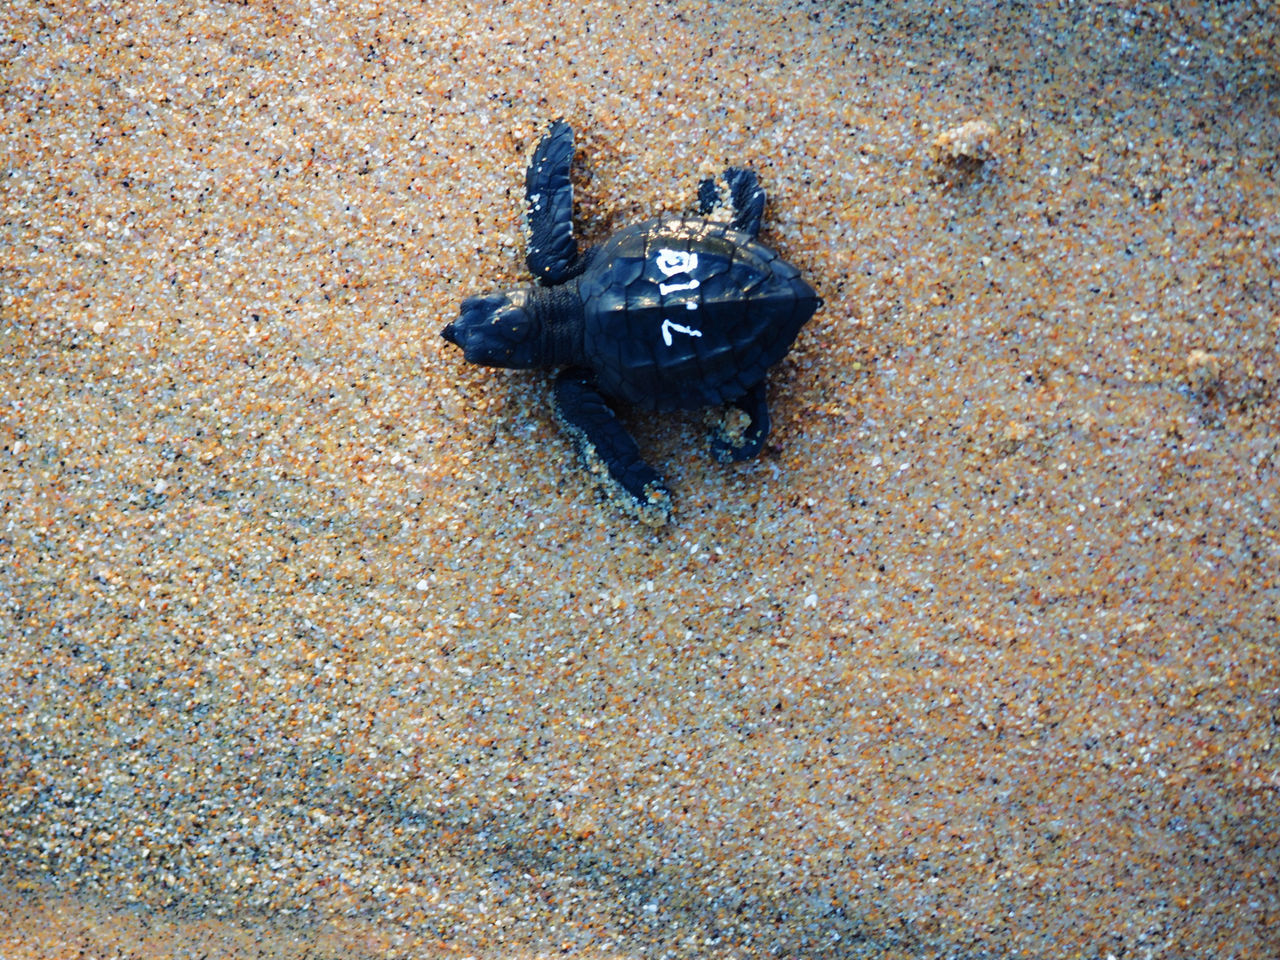 Animal Protection Animal Themes Animals In The Wild Baby Animals Beach Close-up Day High Angle View Mazunte Mexico Nature No People Numbers Outdoors Sand Sea Life Sea Turtle Travel Photography Turtle Wildlife